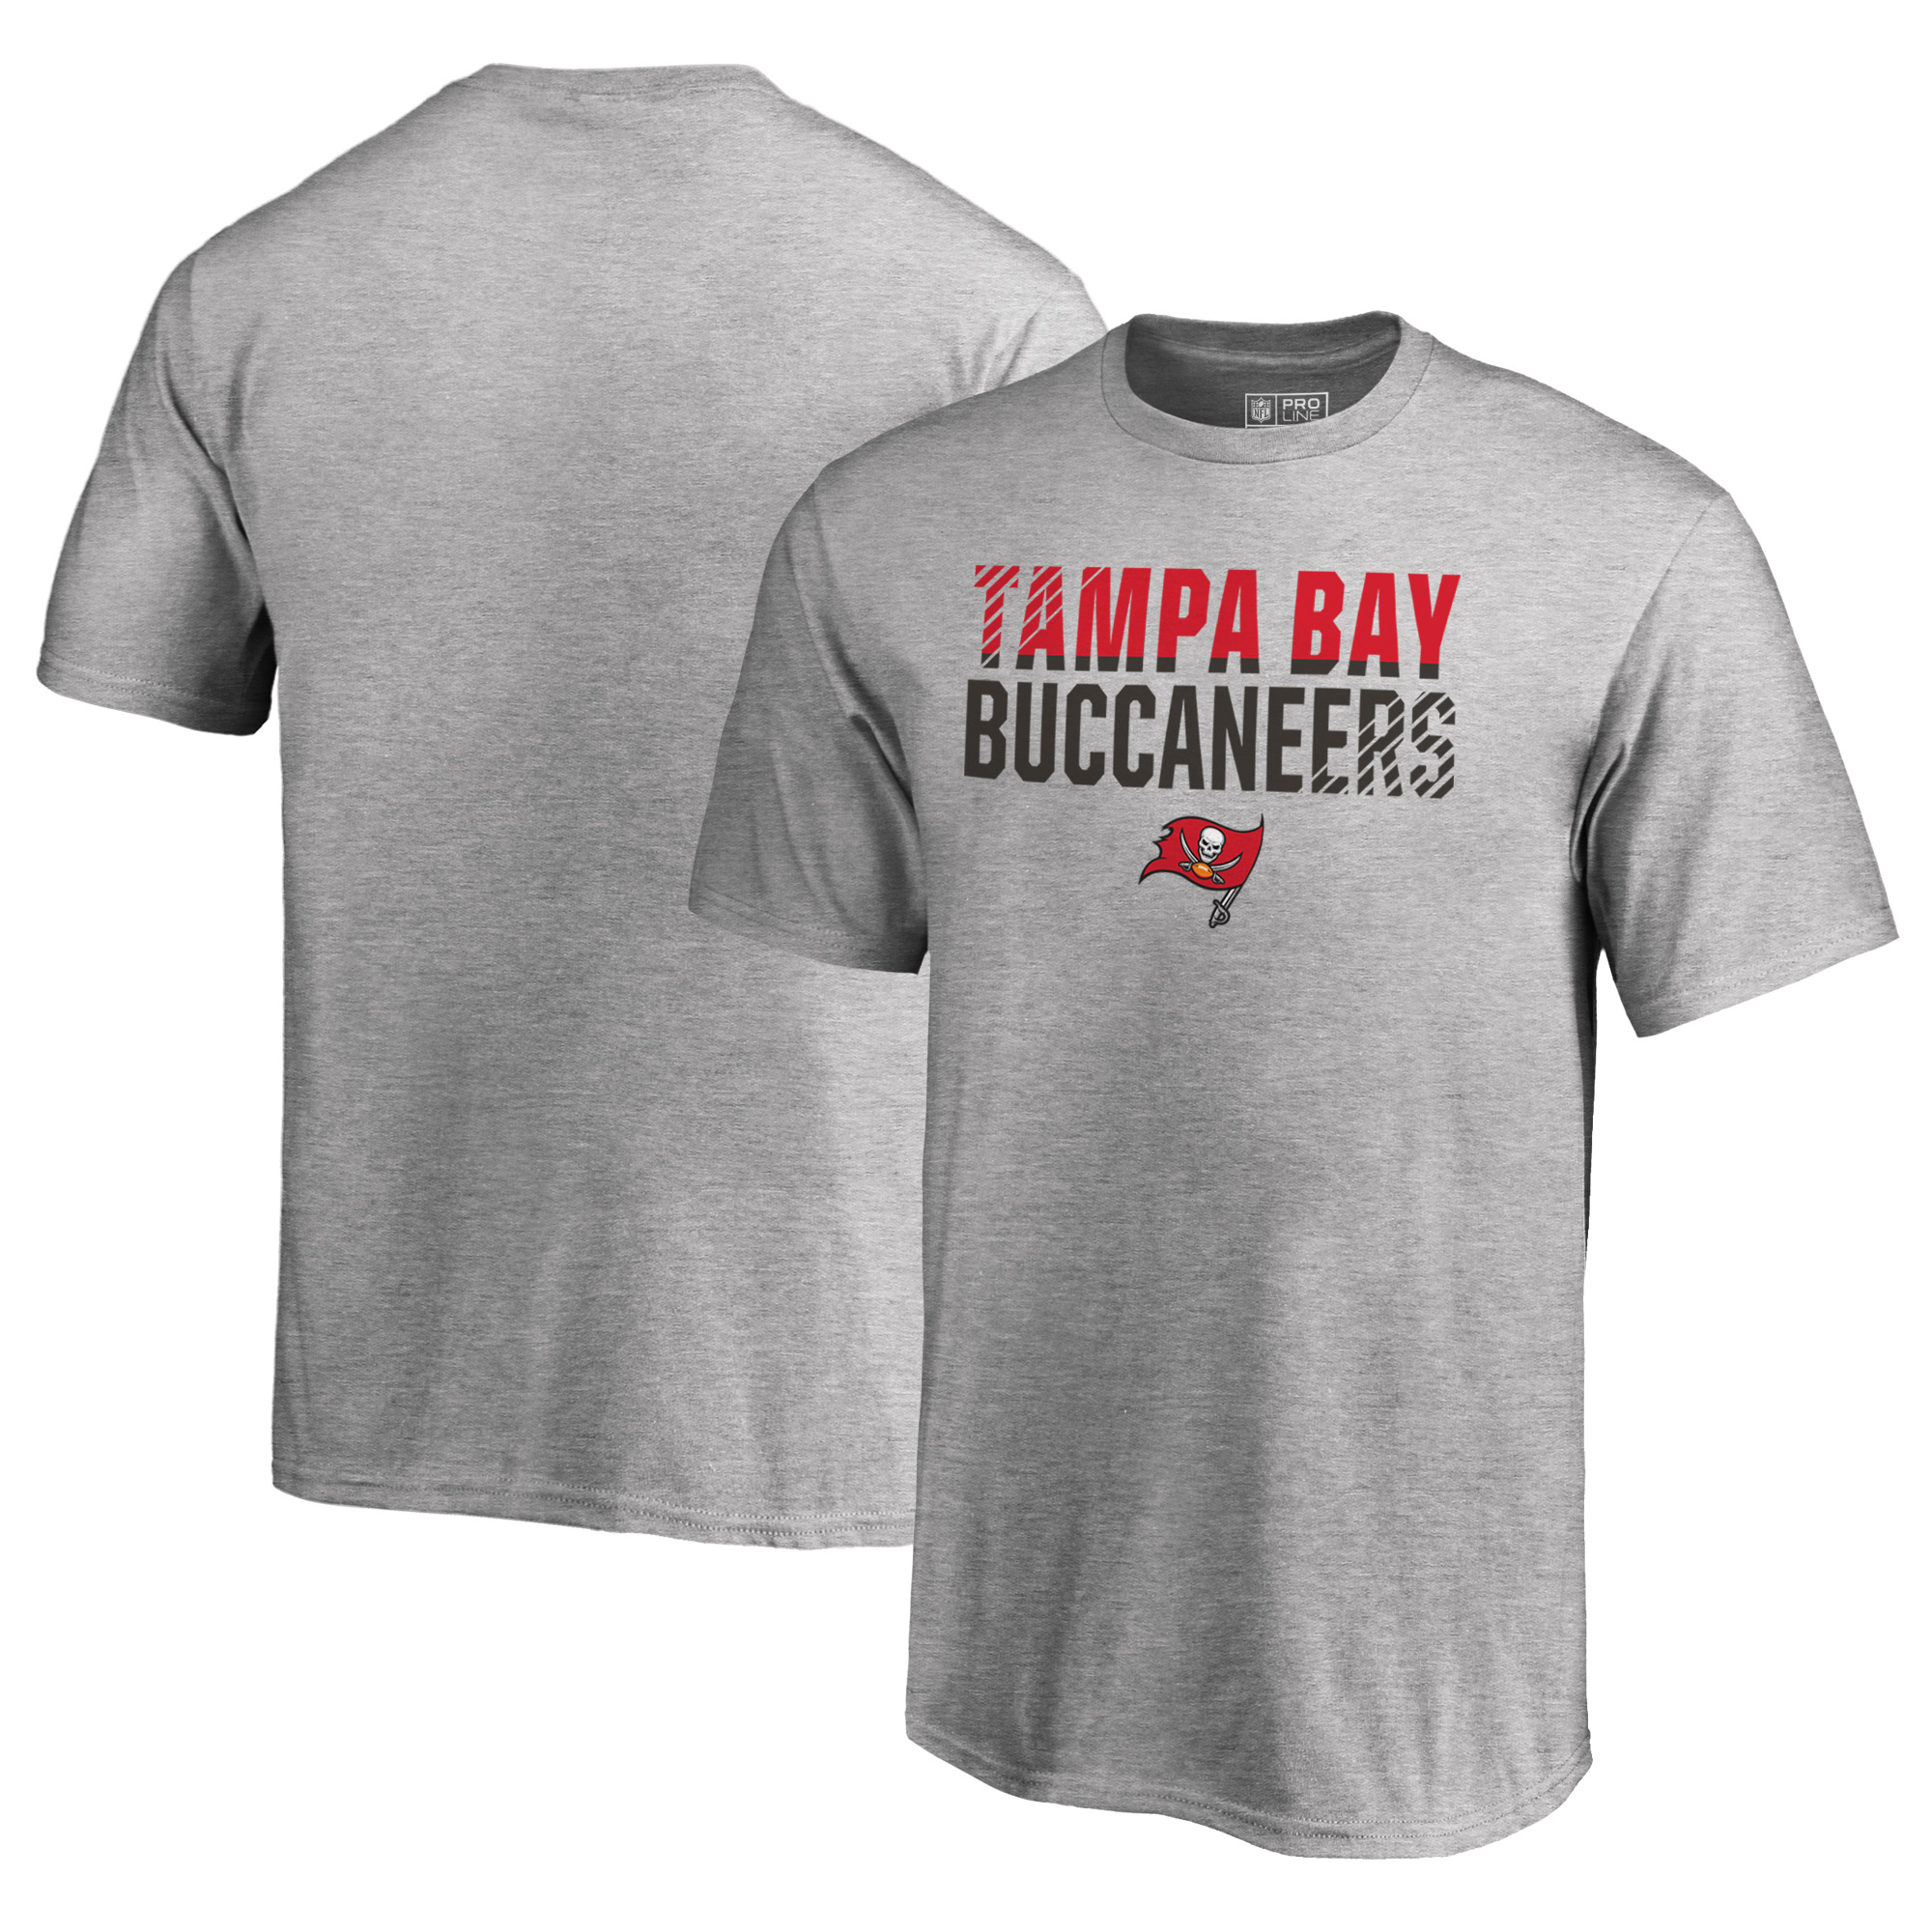 Tampa Bay Buccaneers NFL Pro Line by Fanatics Branded Youth Iconic Collection Fade Out T-Shirt - Ash